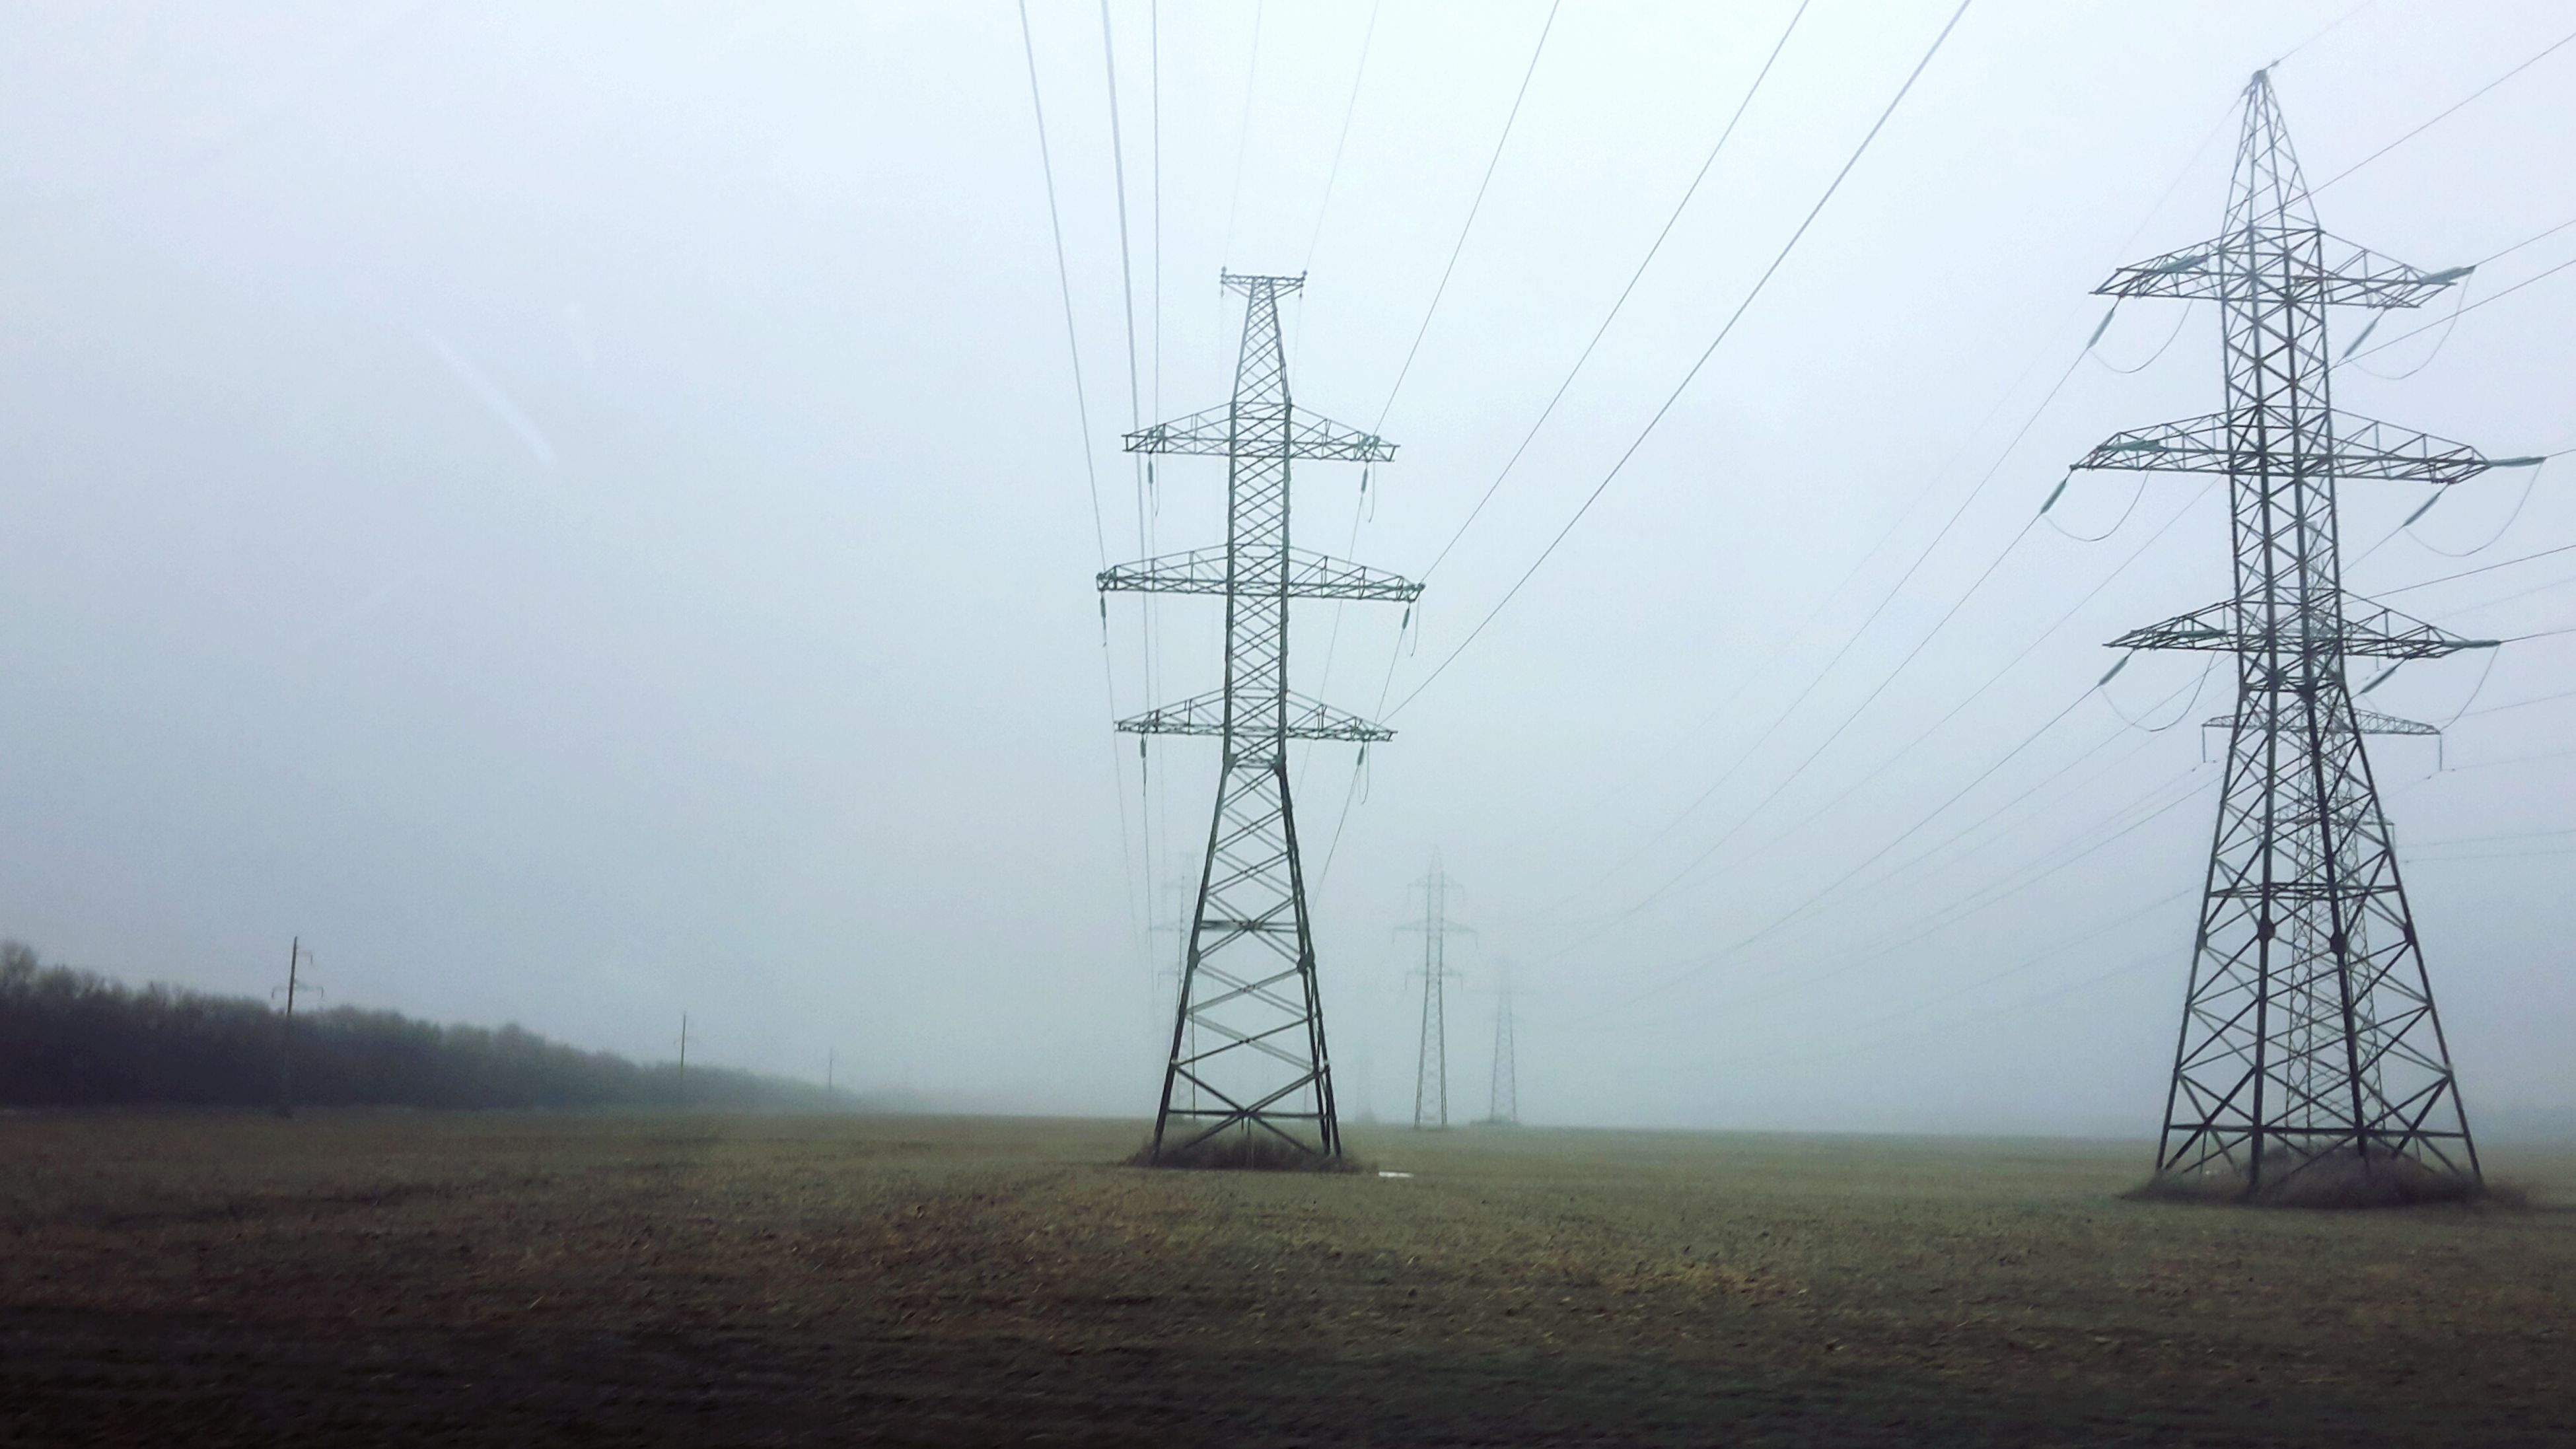 electricity pylon, power line, electricity, power supply, fuel and power generation, connection, technology, cable, clear sky, field, landscape, power cable, tranquility, nature, sky, electricity tower, tranquil scene, outdoors, no people, weather